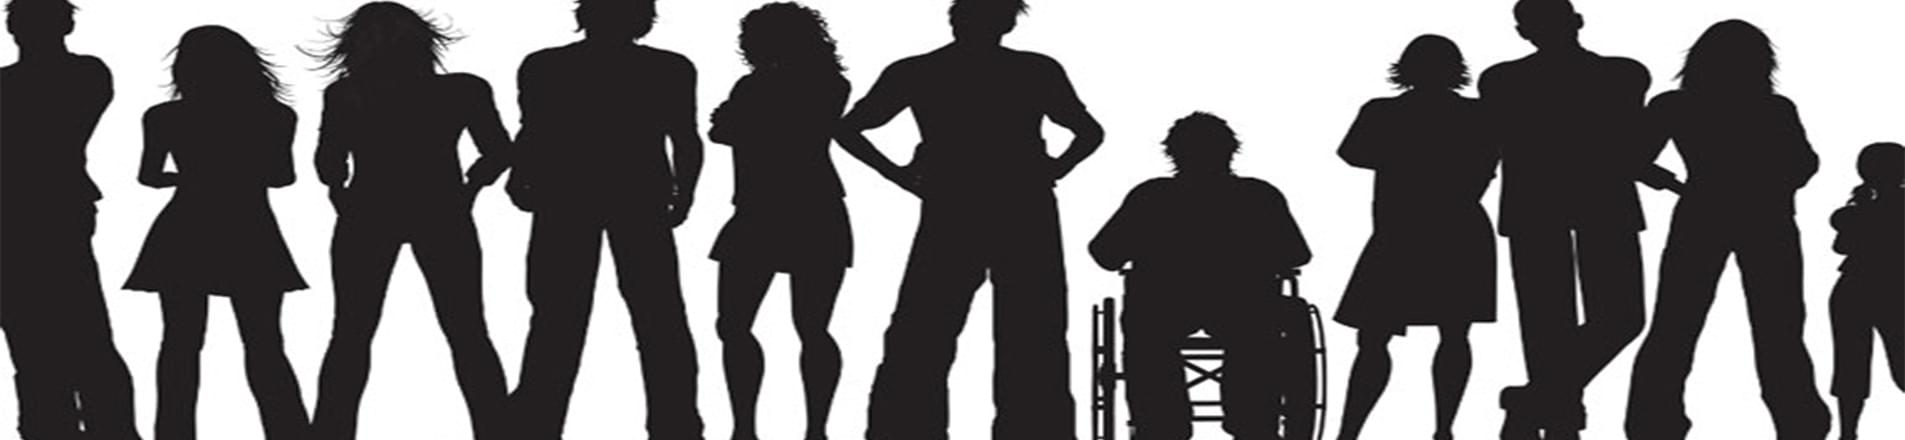 Image of peoples shadow. Managing employees with hidden disabilities: where to start?